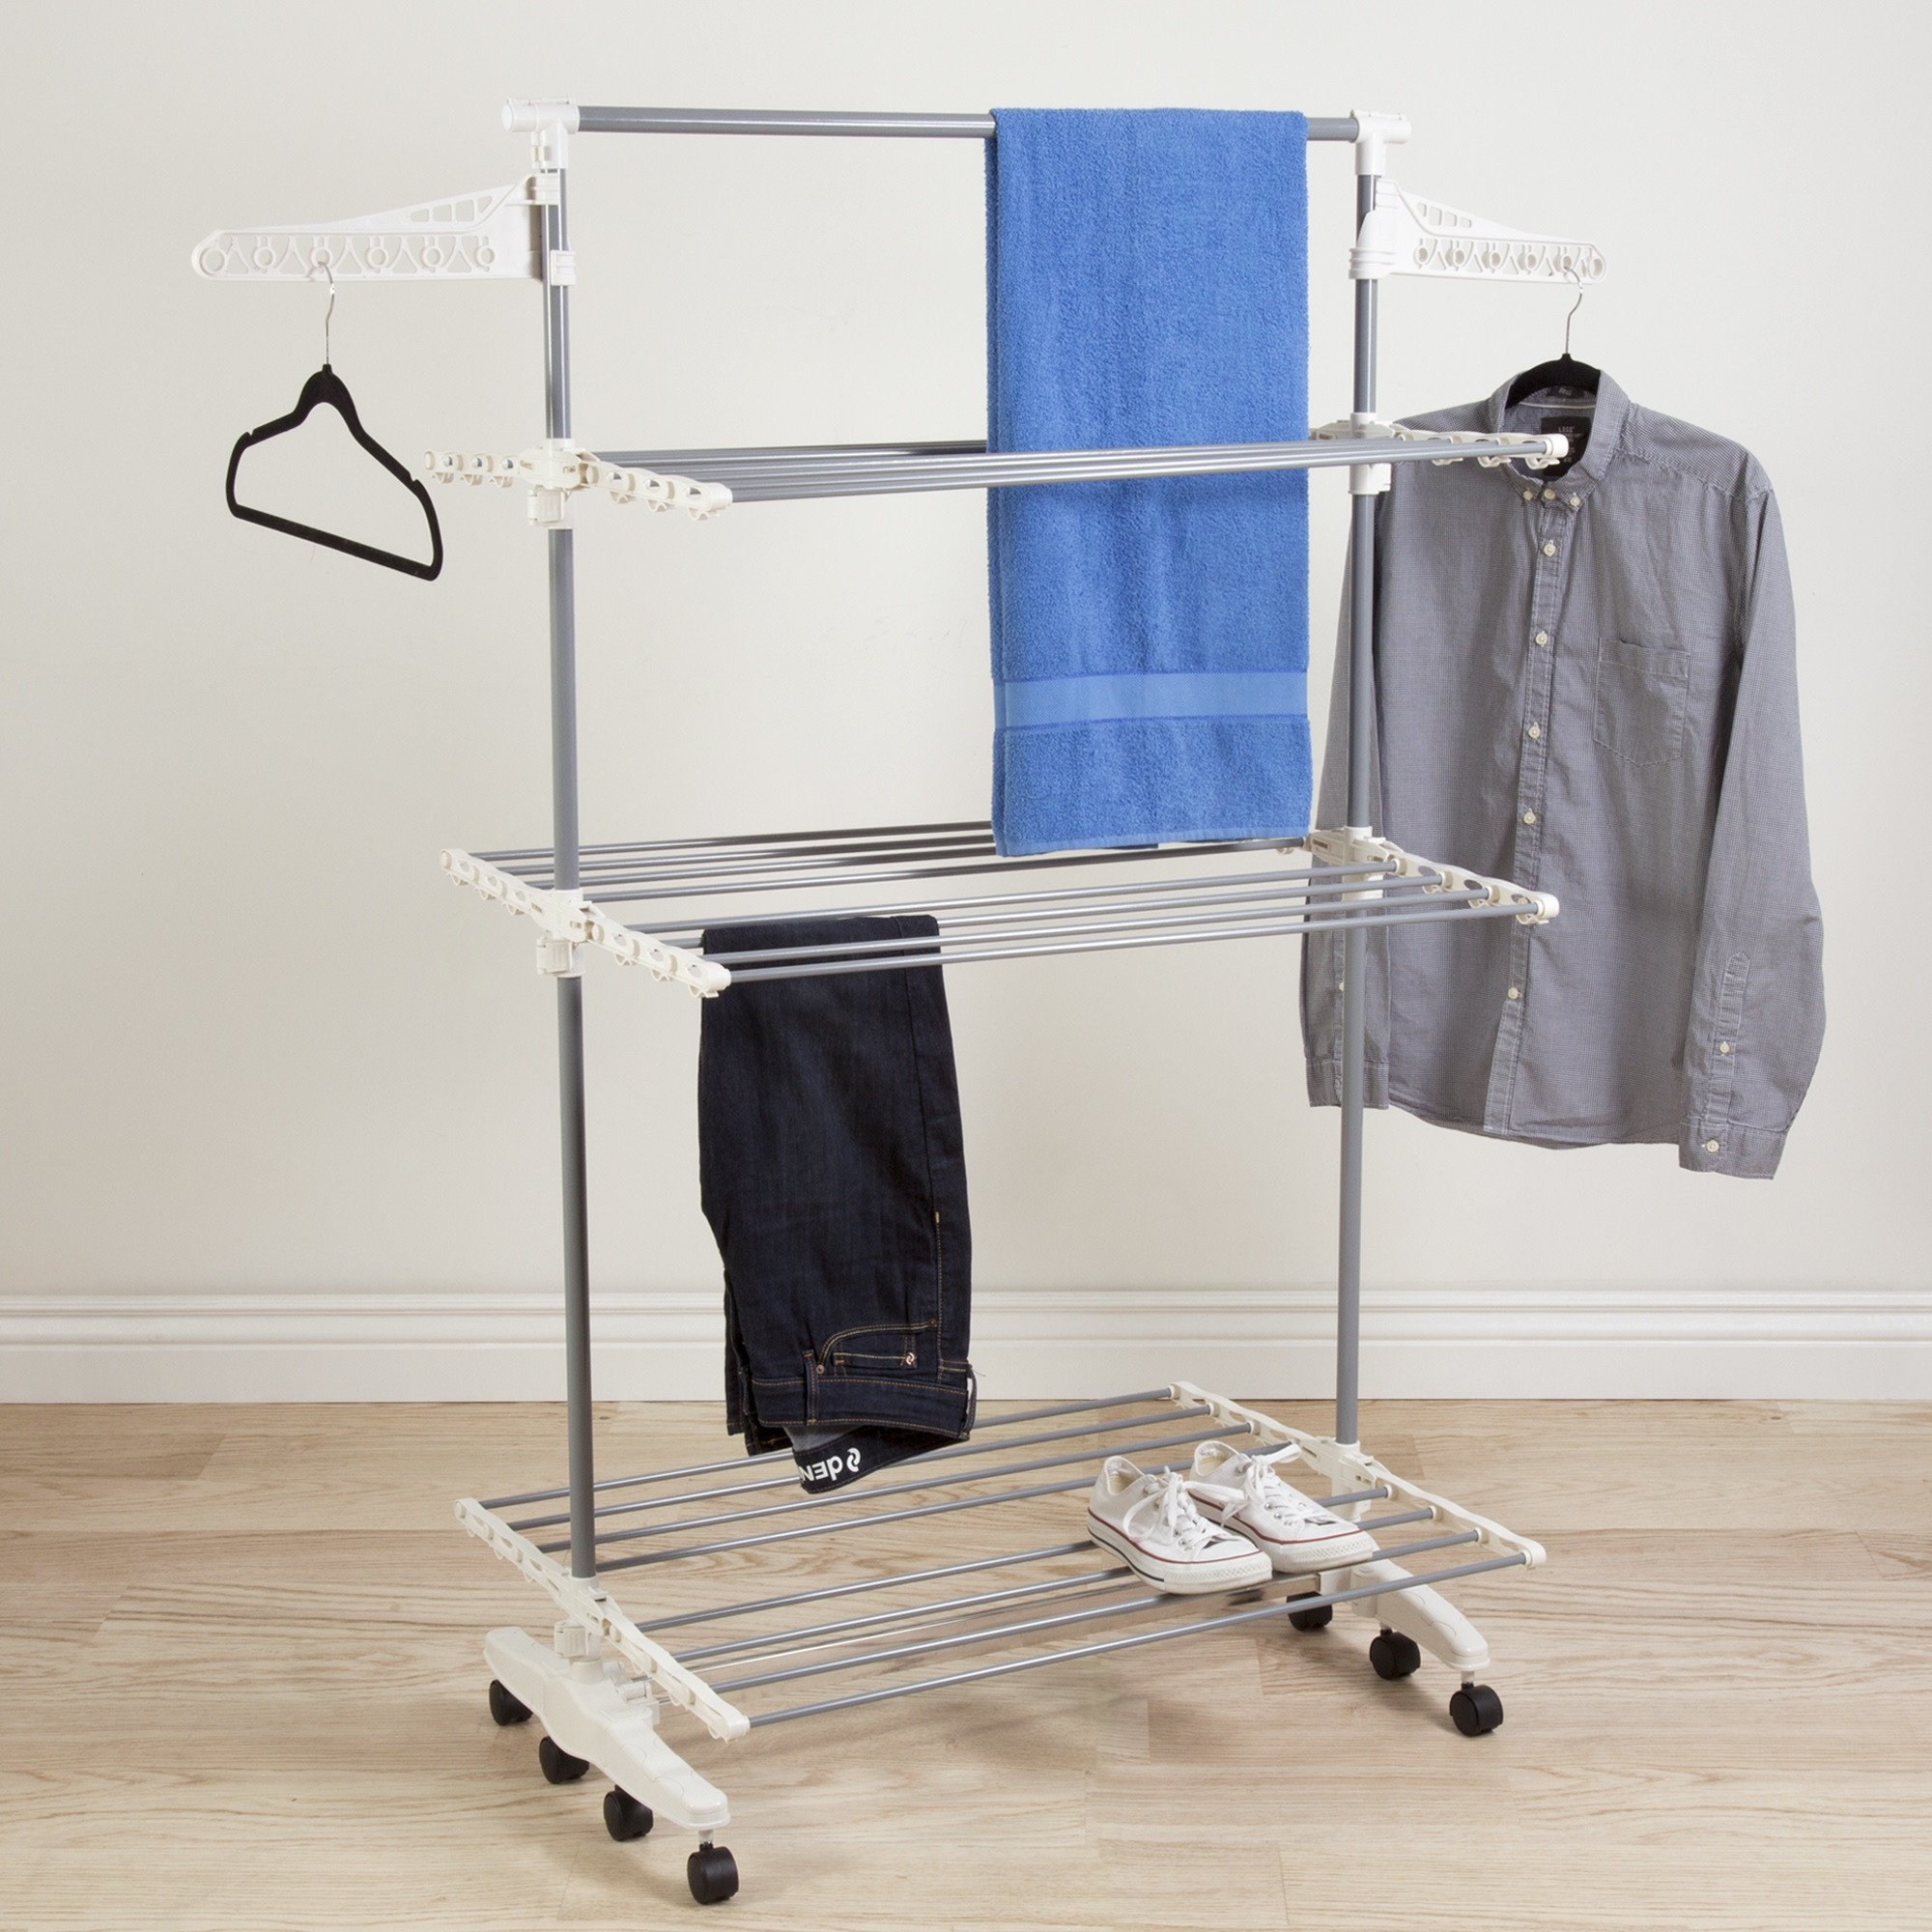 3 Tier Rolling Drying Rack Made w/ Stainless Steel and Plastic in White and Gray Finish 60'' H x 58.5'' W x 27'' D in.